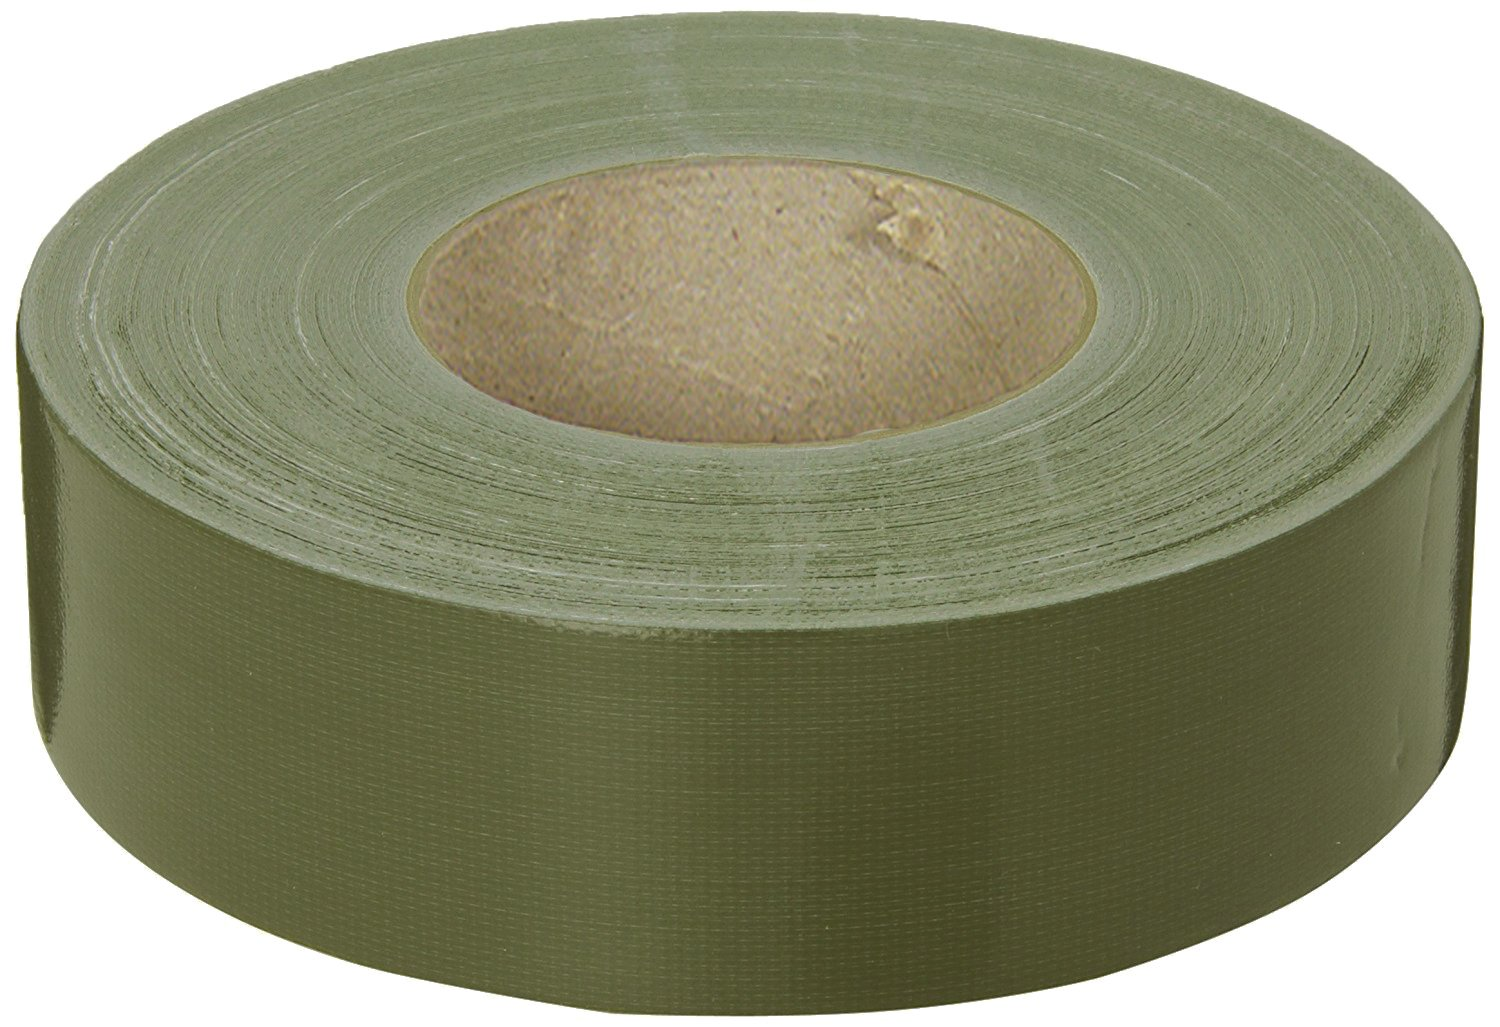 Olive Drab Military Duct Tape AKA 100 Mile an Hour Tape, 9 mil Thick, 2'' x 60 Yards US Made